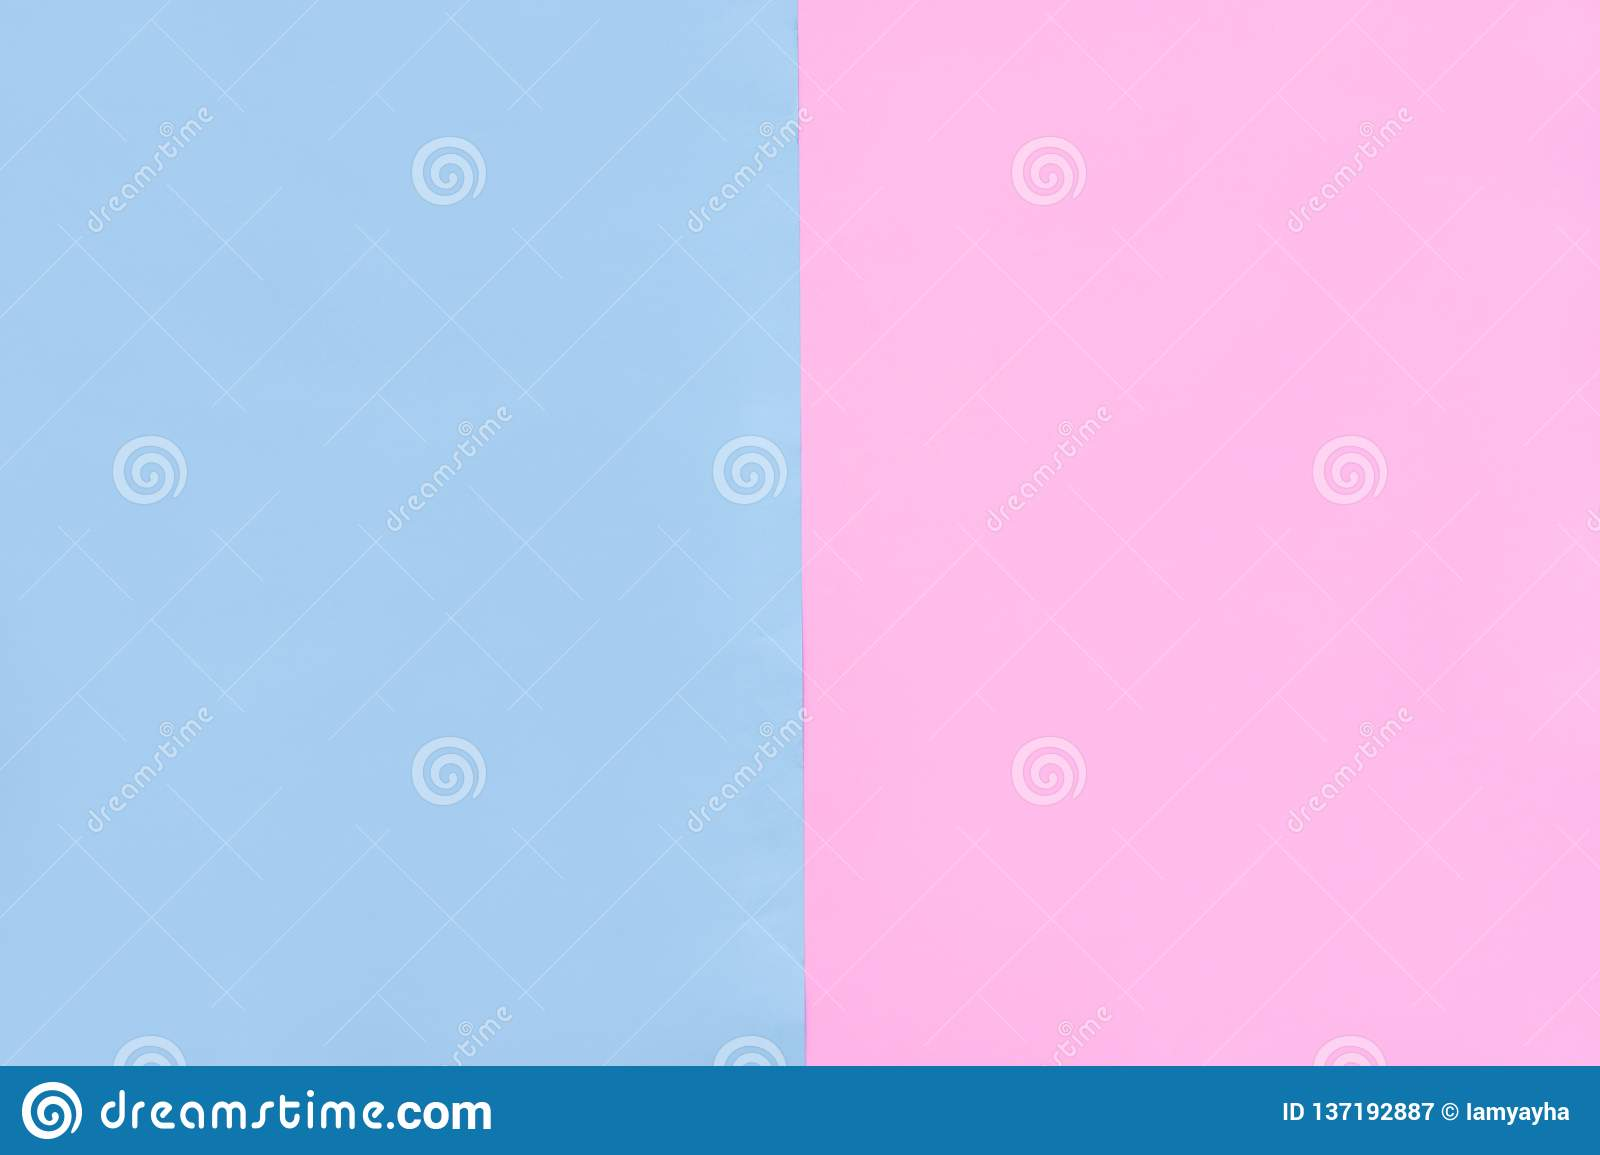 Beautiful Pink And Blue Pastel Color Paper Texture Empty Flat